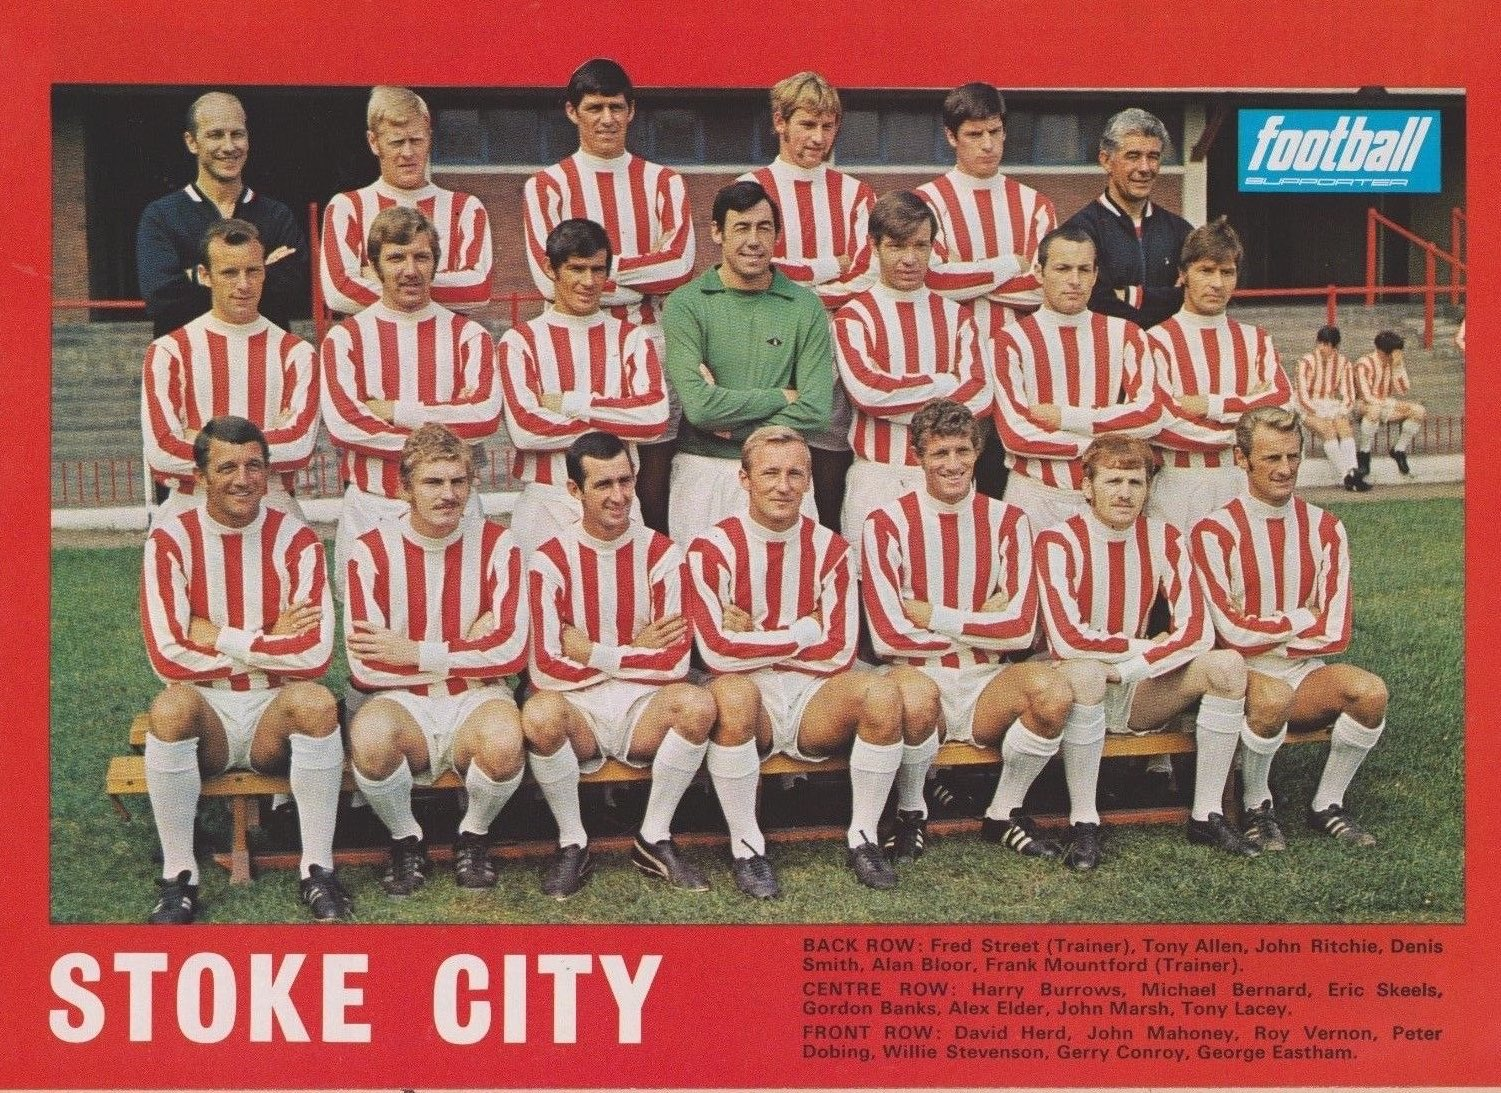 Stoke City 1970 https://t.co/7fpnEEERe5